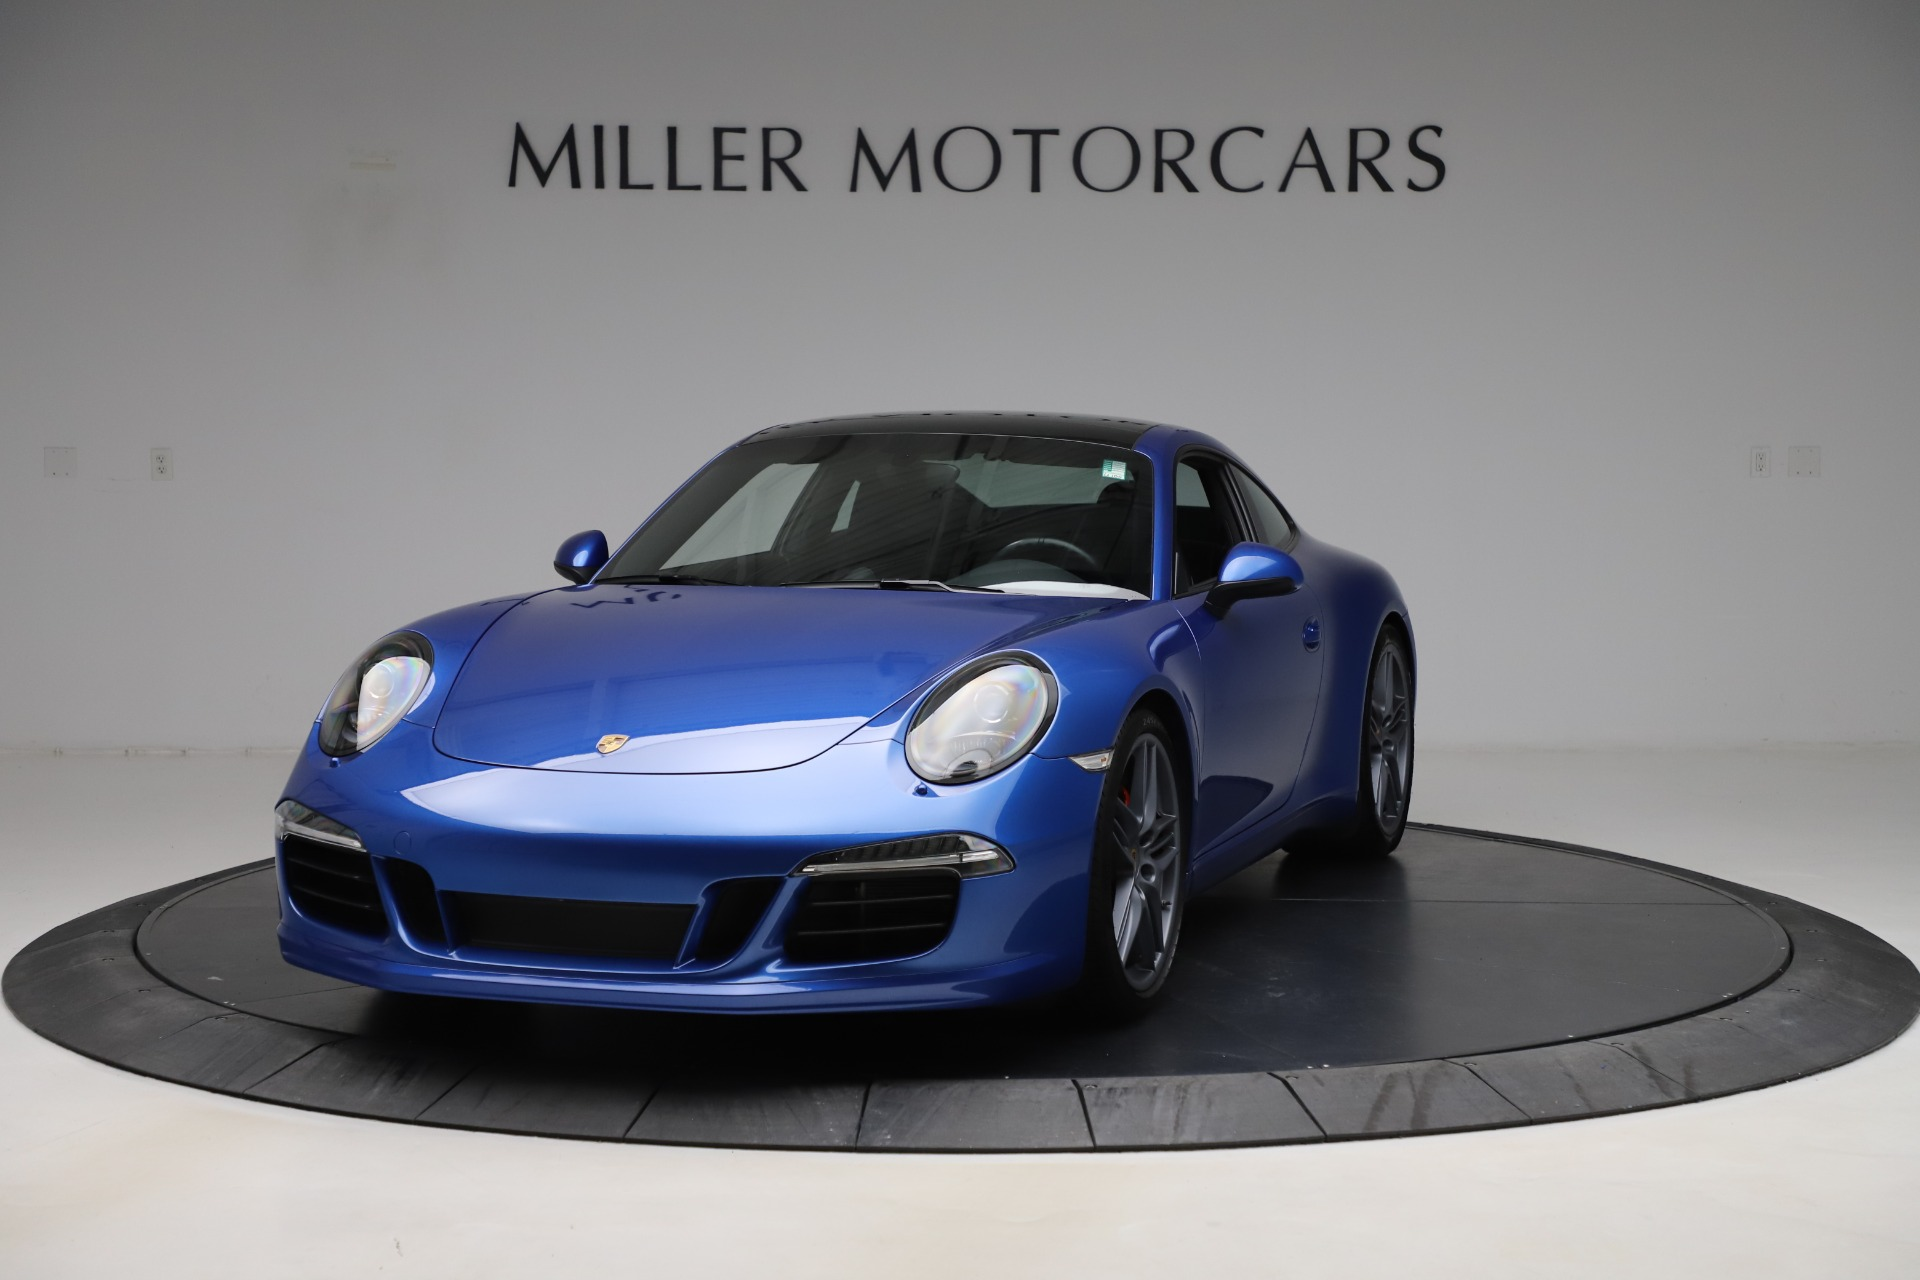 Used 2014 Porsche 911 Carrera S for sale Sold at McLaren Greenwich in Greenwich CT 06830 1